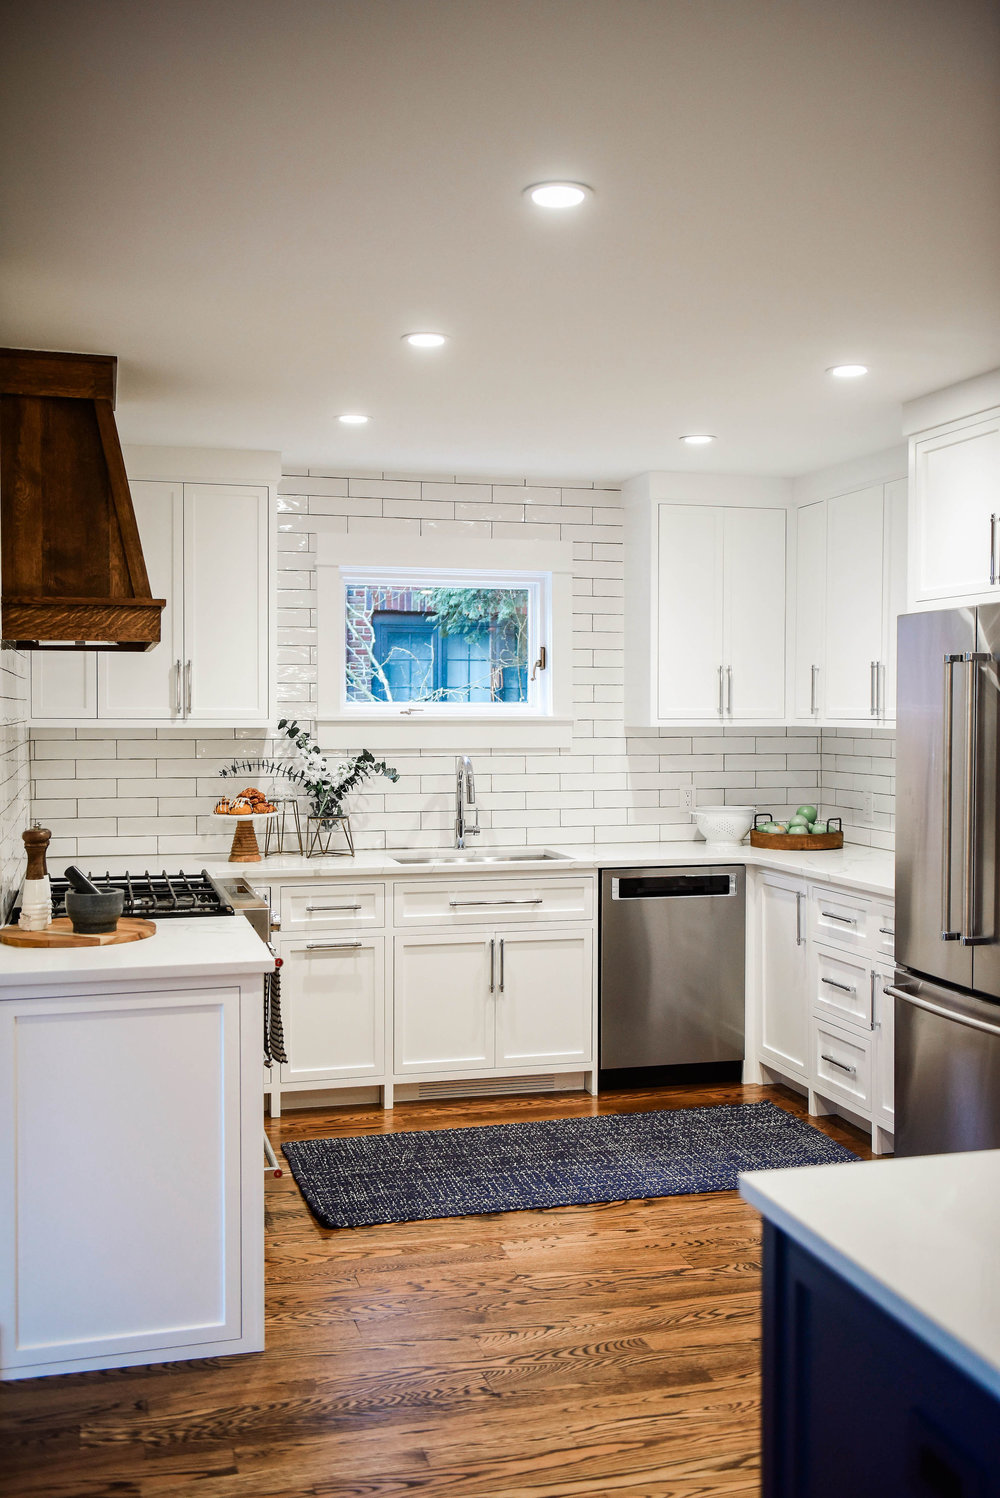 white kitchen inset cabinets subway tile.jpg